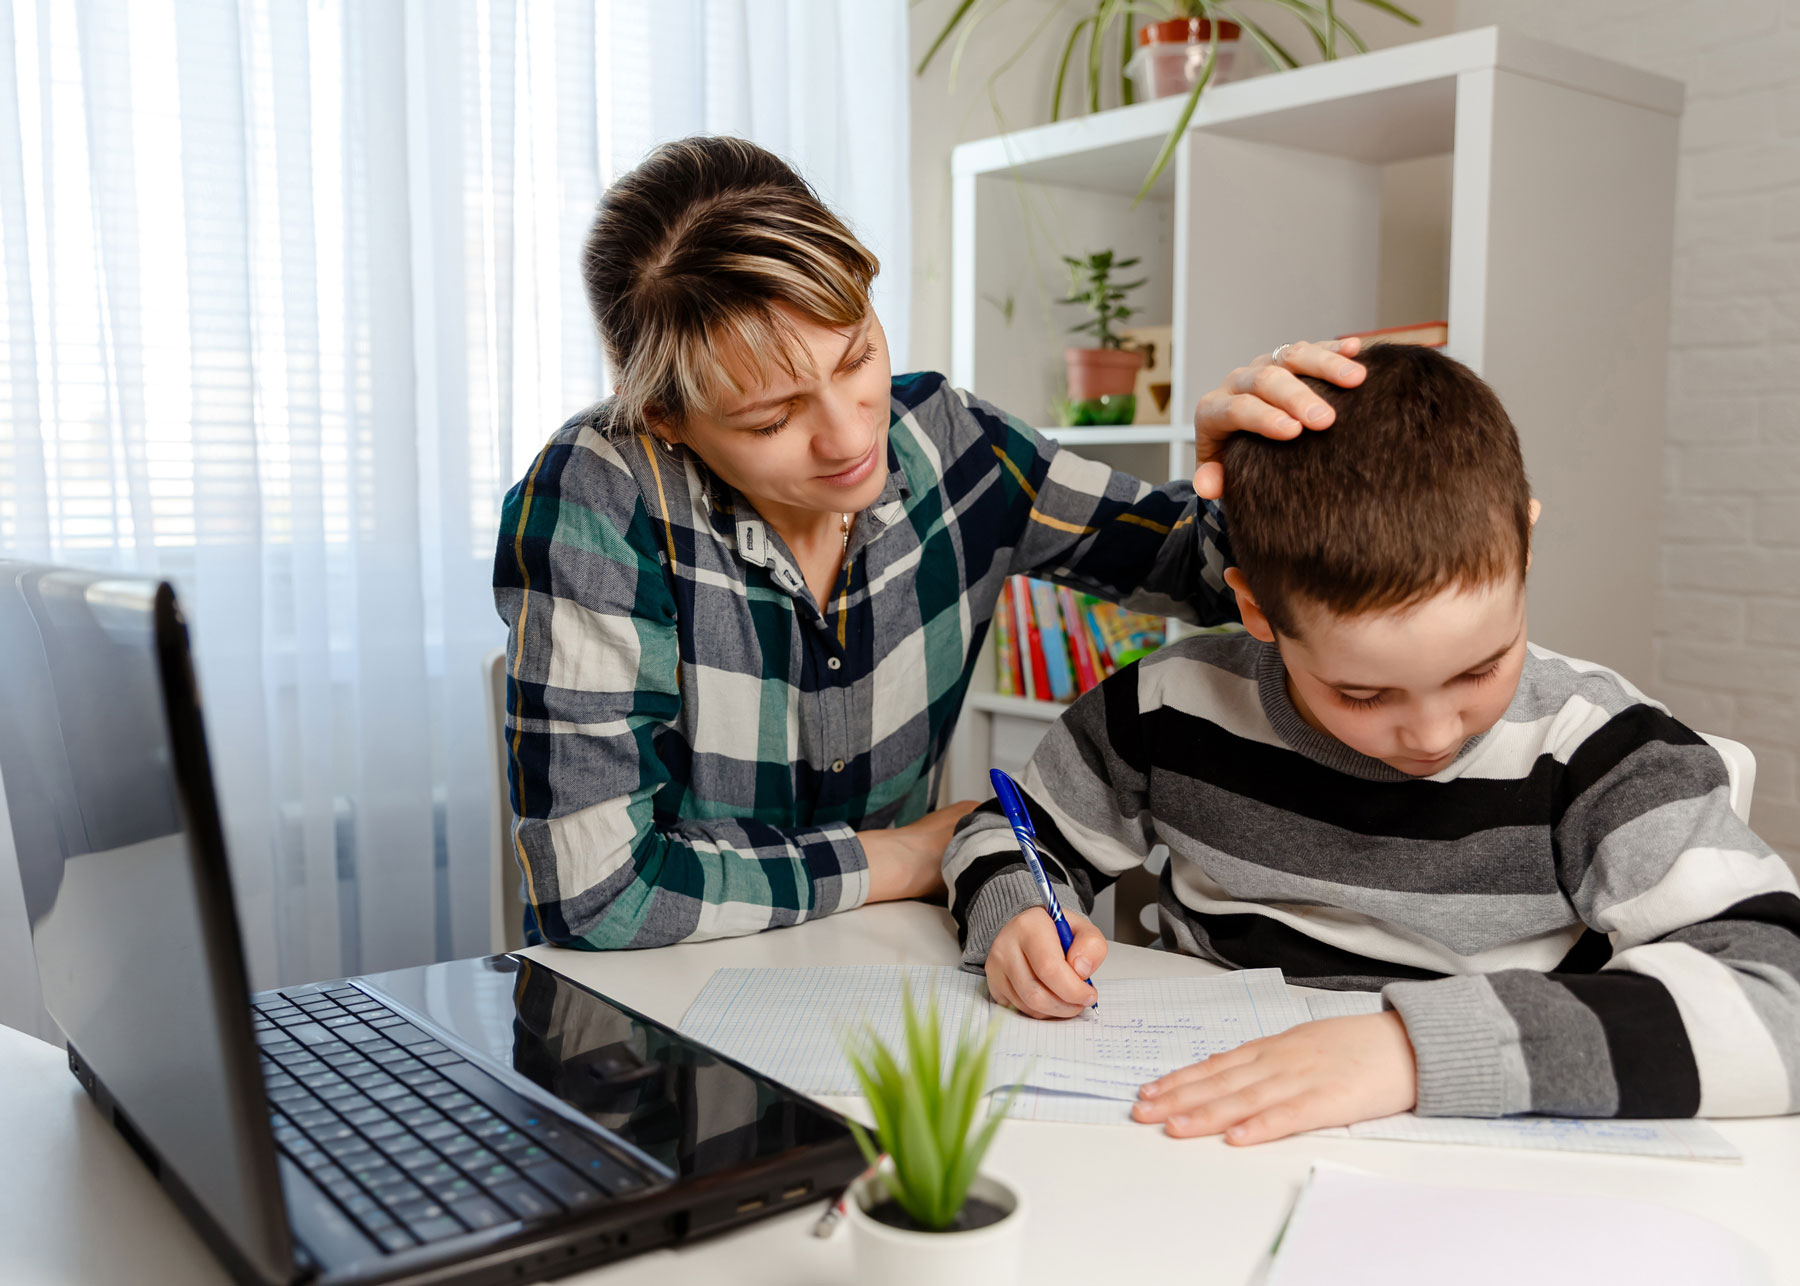 Parent and young child studying at home